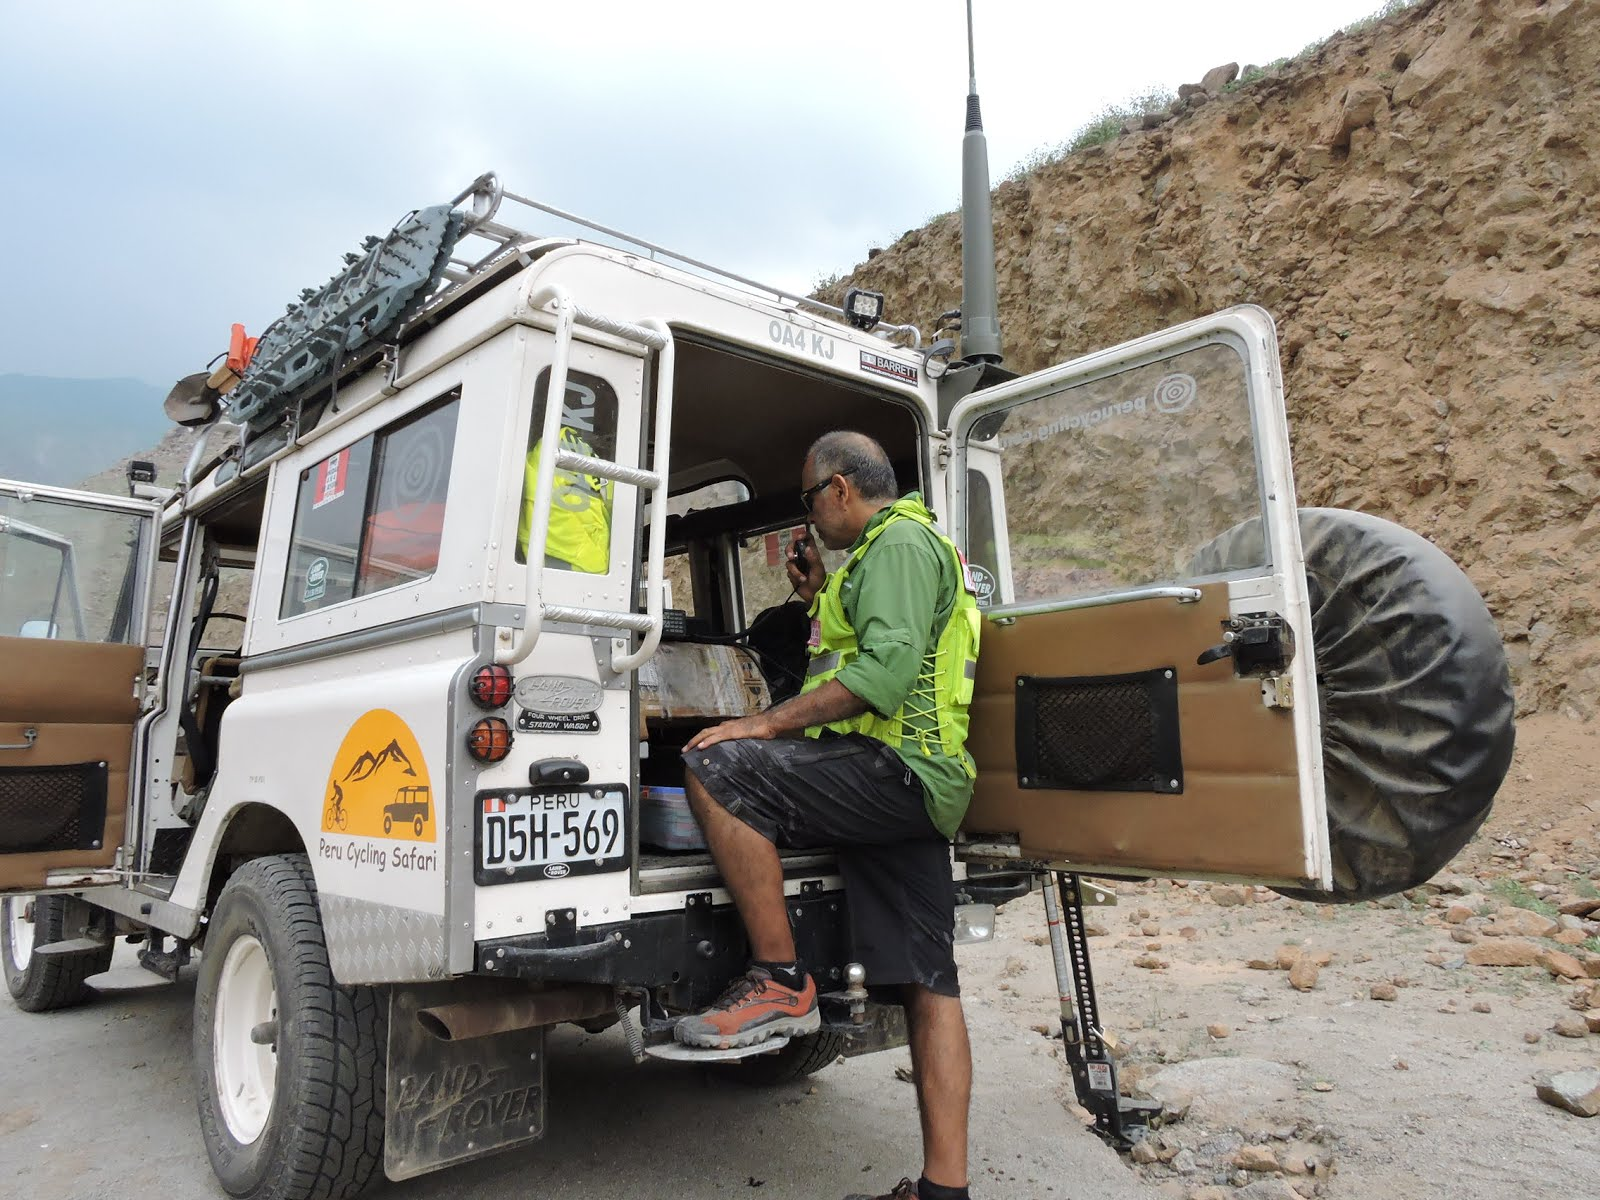 HF Radio assisting disaster relief in Peru